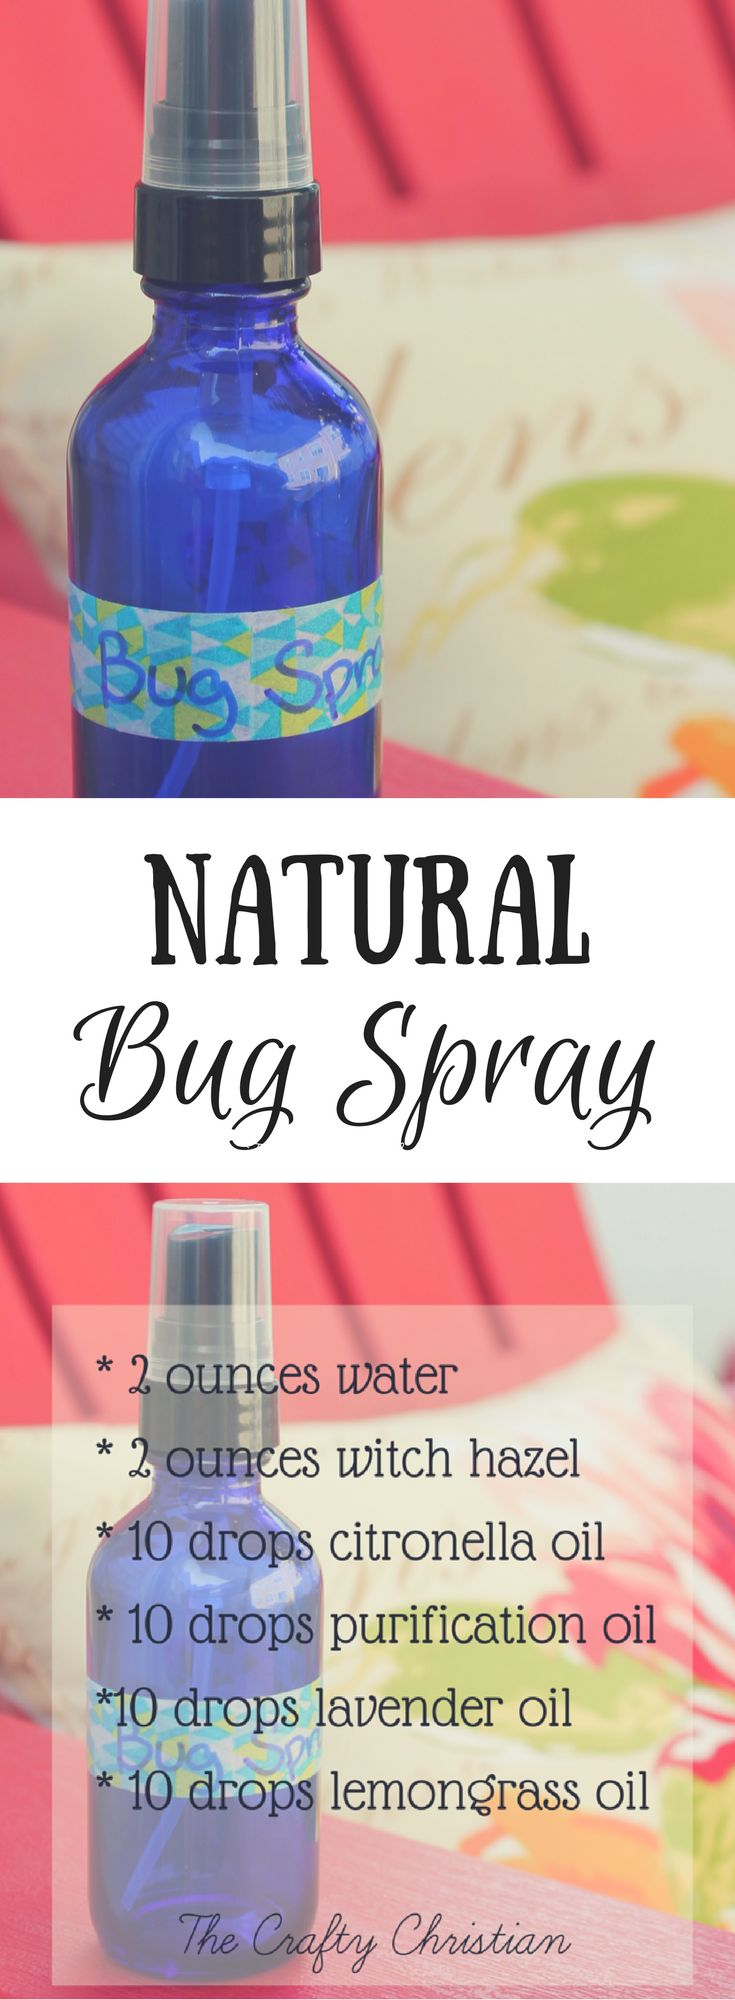 Natural bug spray is perfect for people who are chronically ill, or for kids…